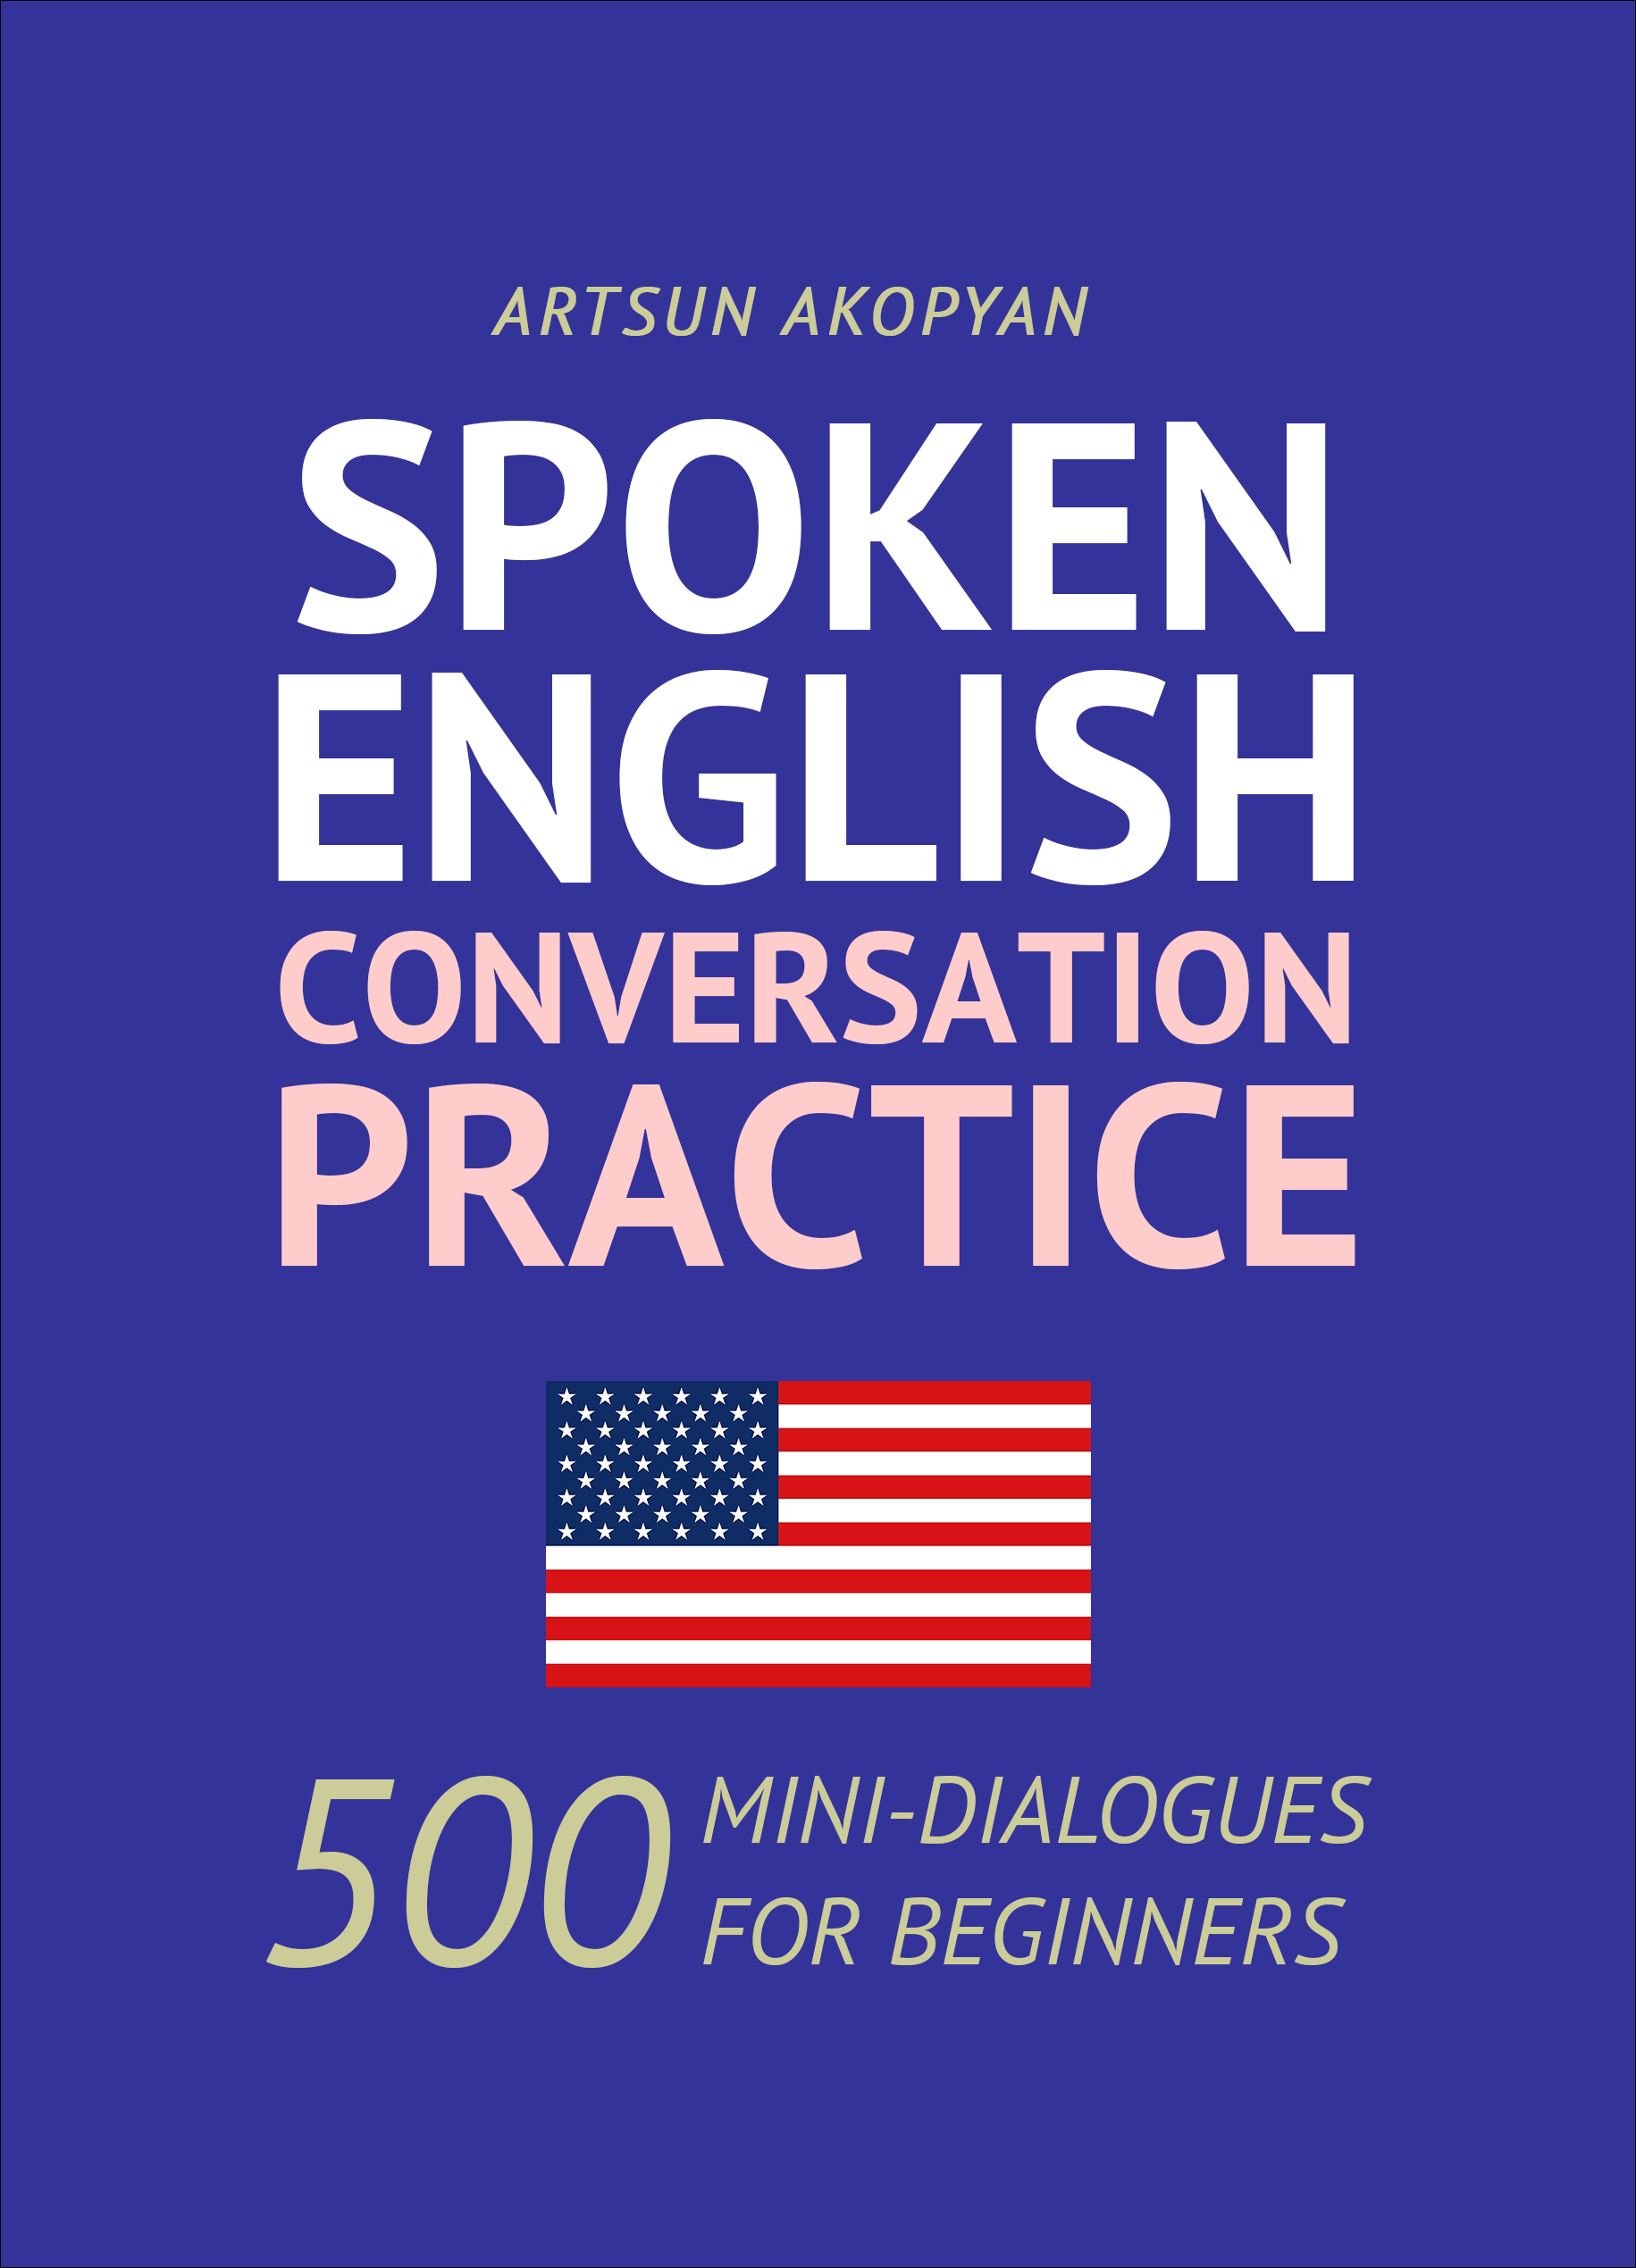 Spoken English Conversation Practice  500 Mini-Dialogues for Beginners